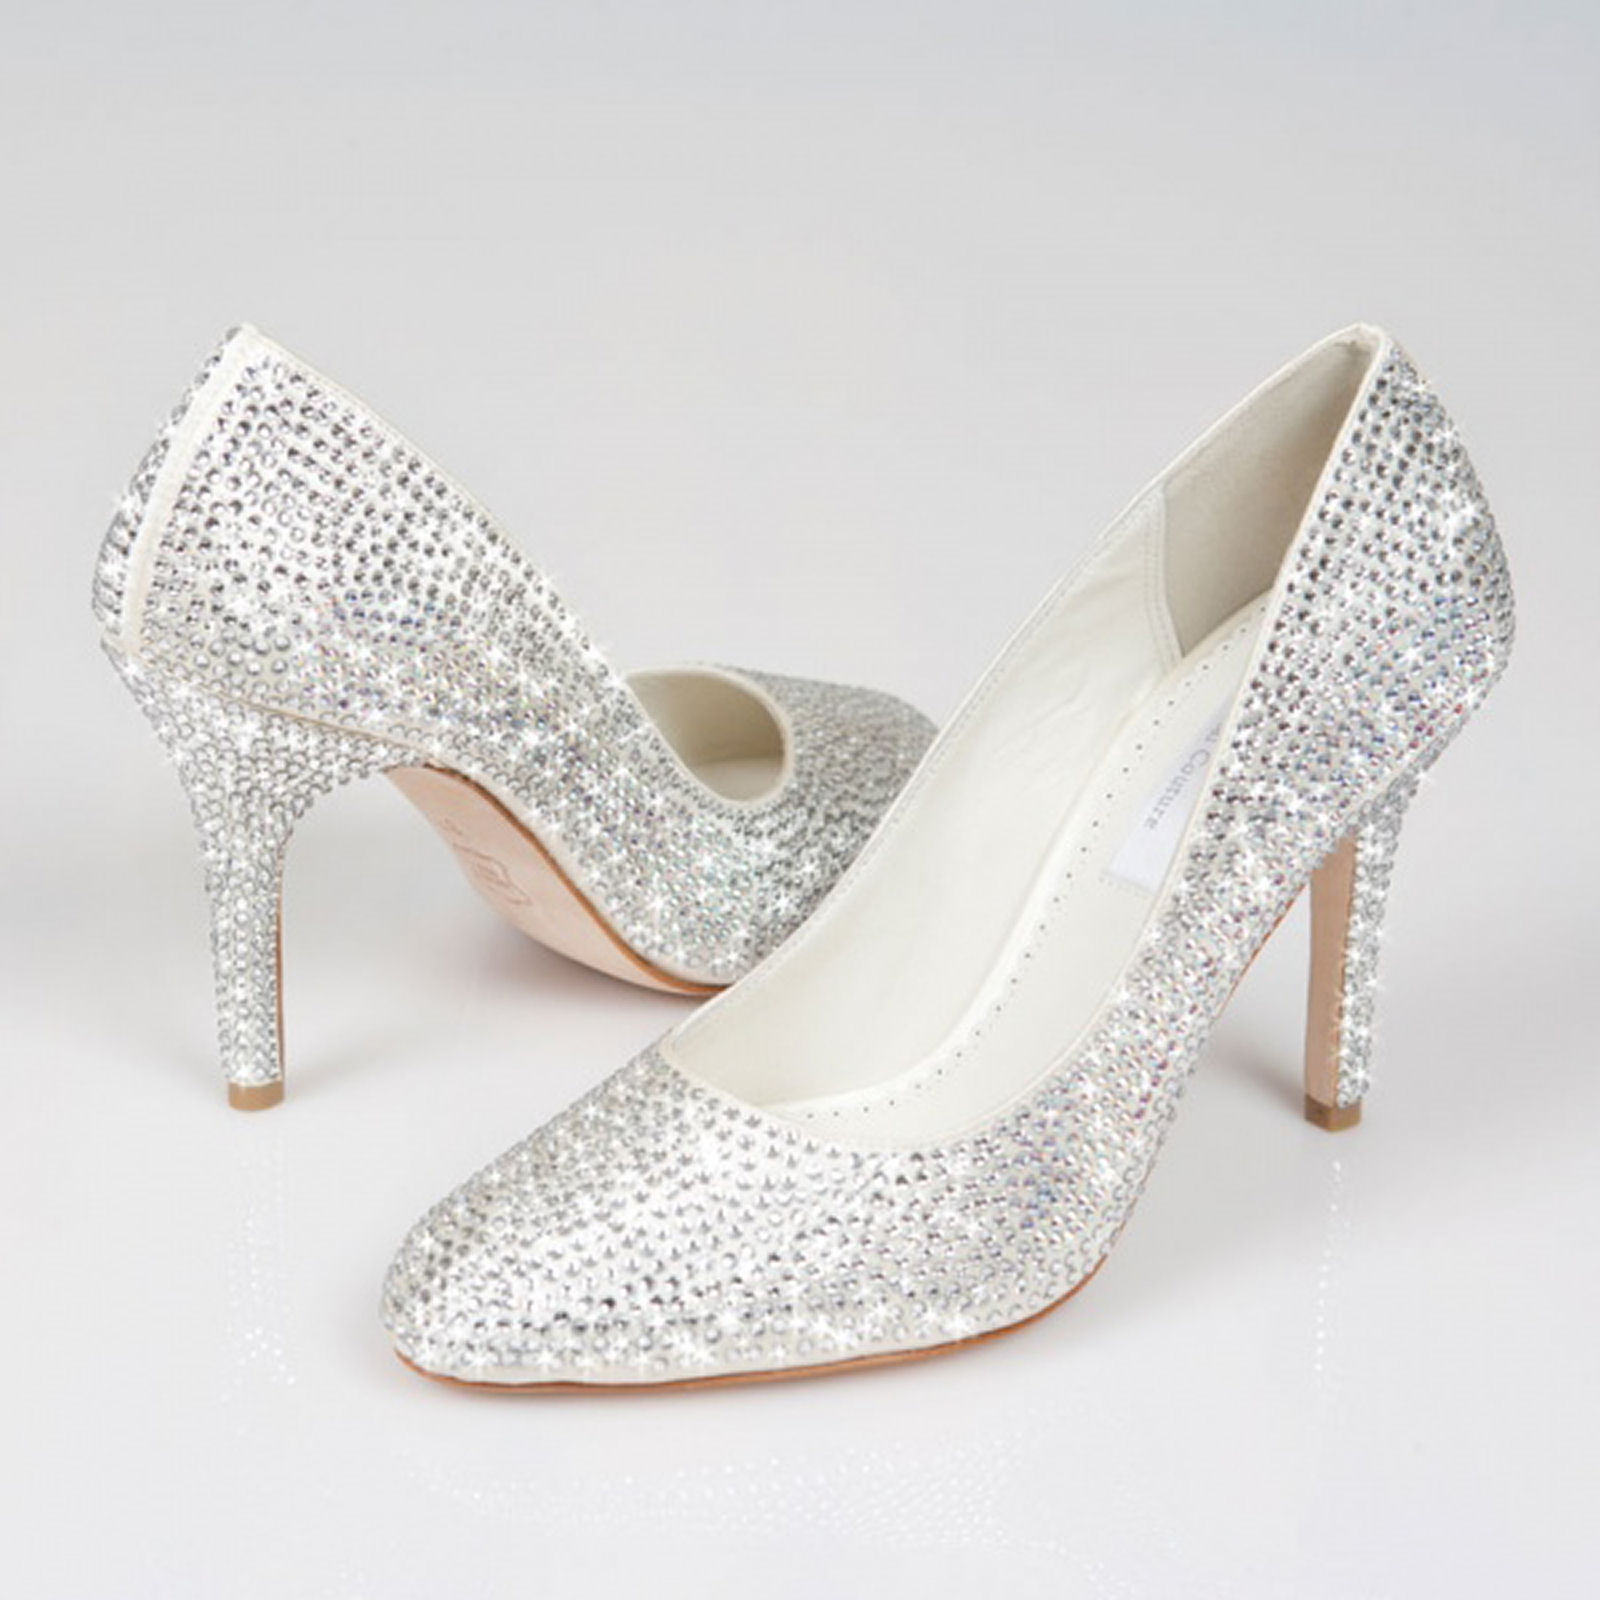 silver flat shoes for wedding photo - 1